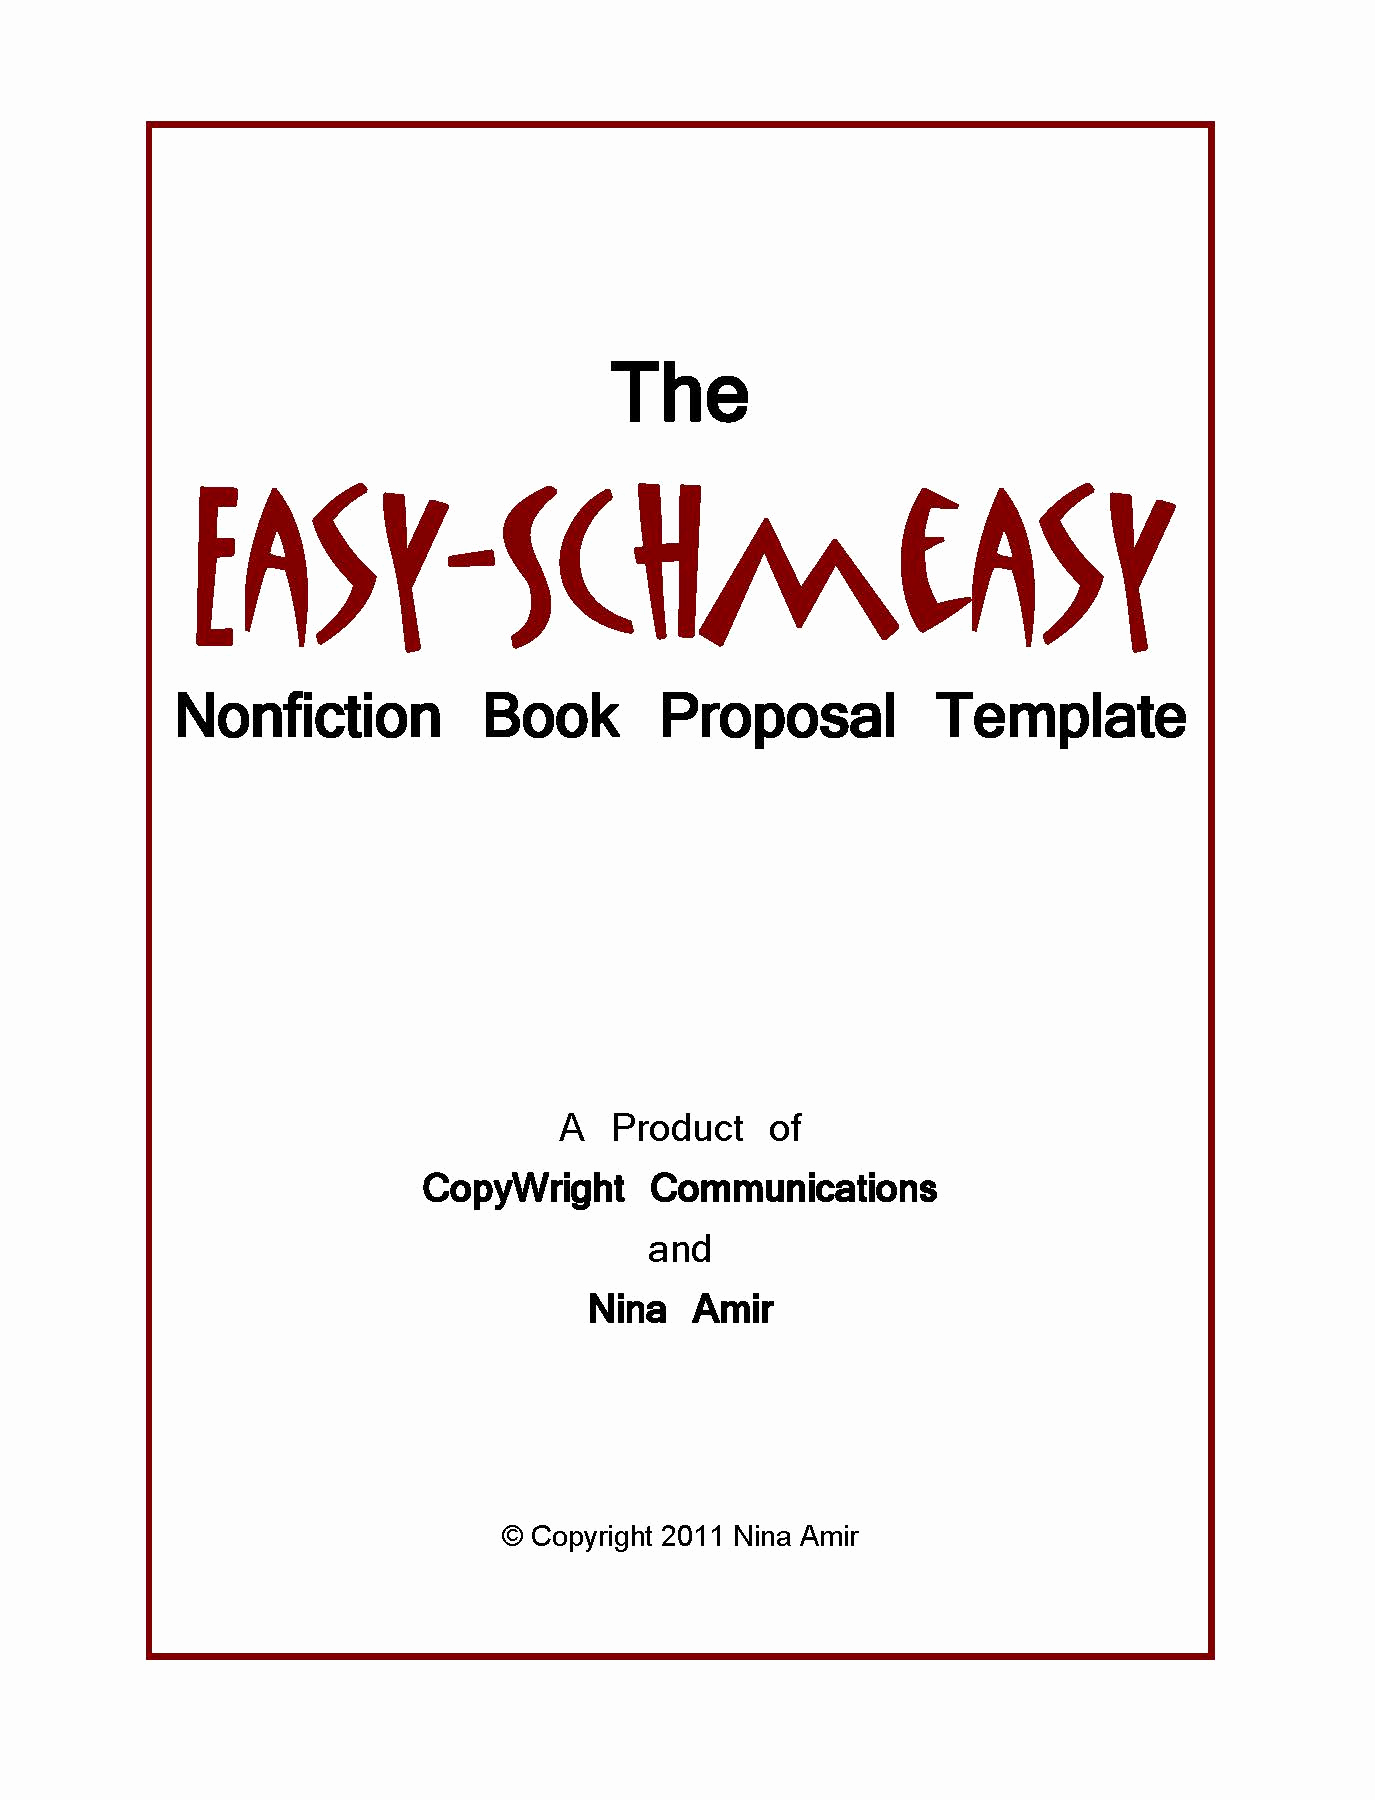 Nonfiction Book Proposal Template Beautiful Easy Schmeasy Book Proposal Template Write Nonfiction now